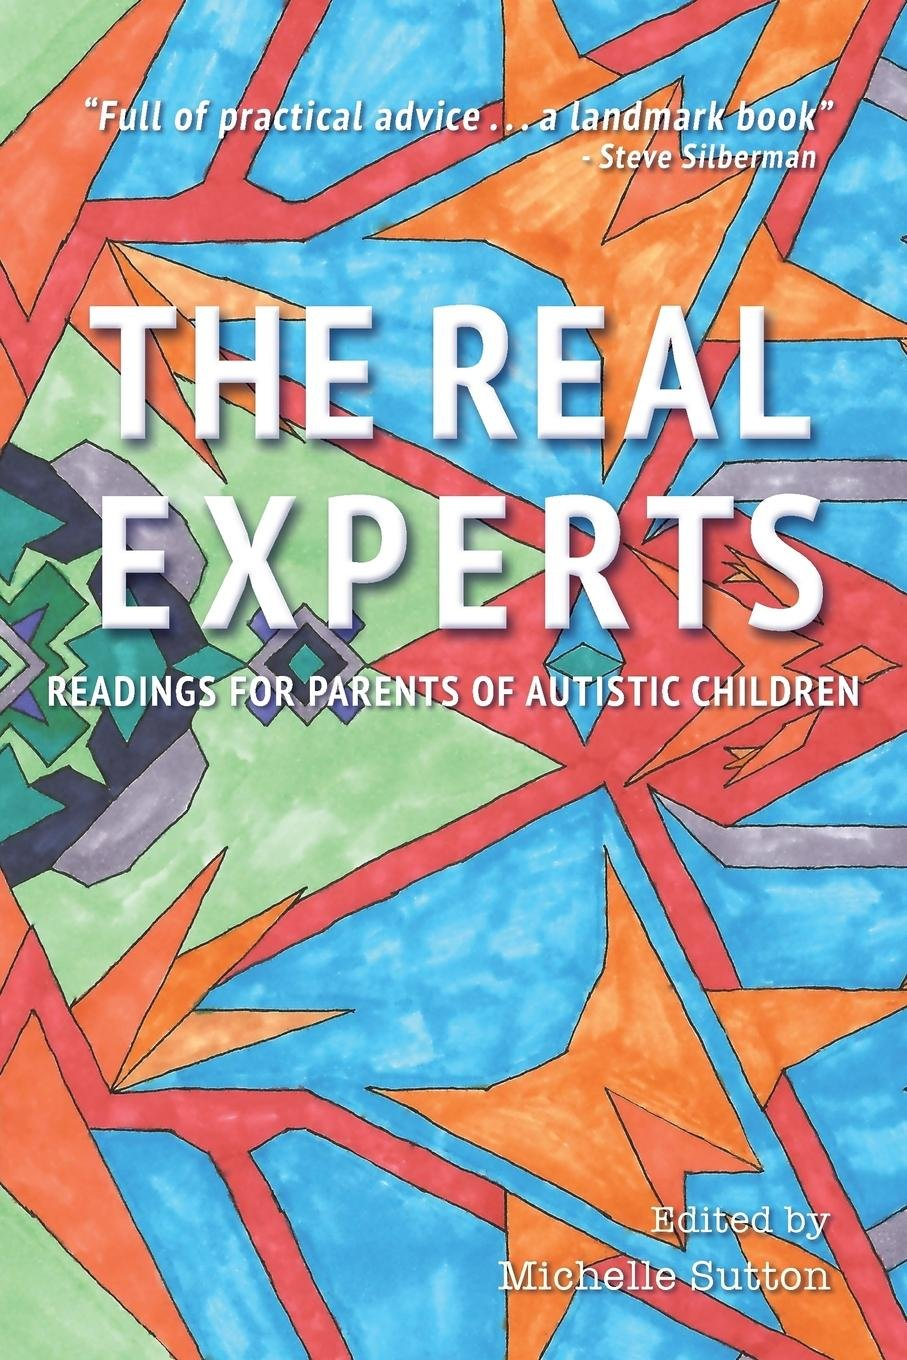 The Real Experts: Readings for Parents of Autistic Children - Popular Autism Related Book